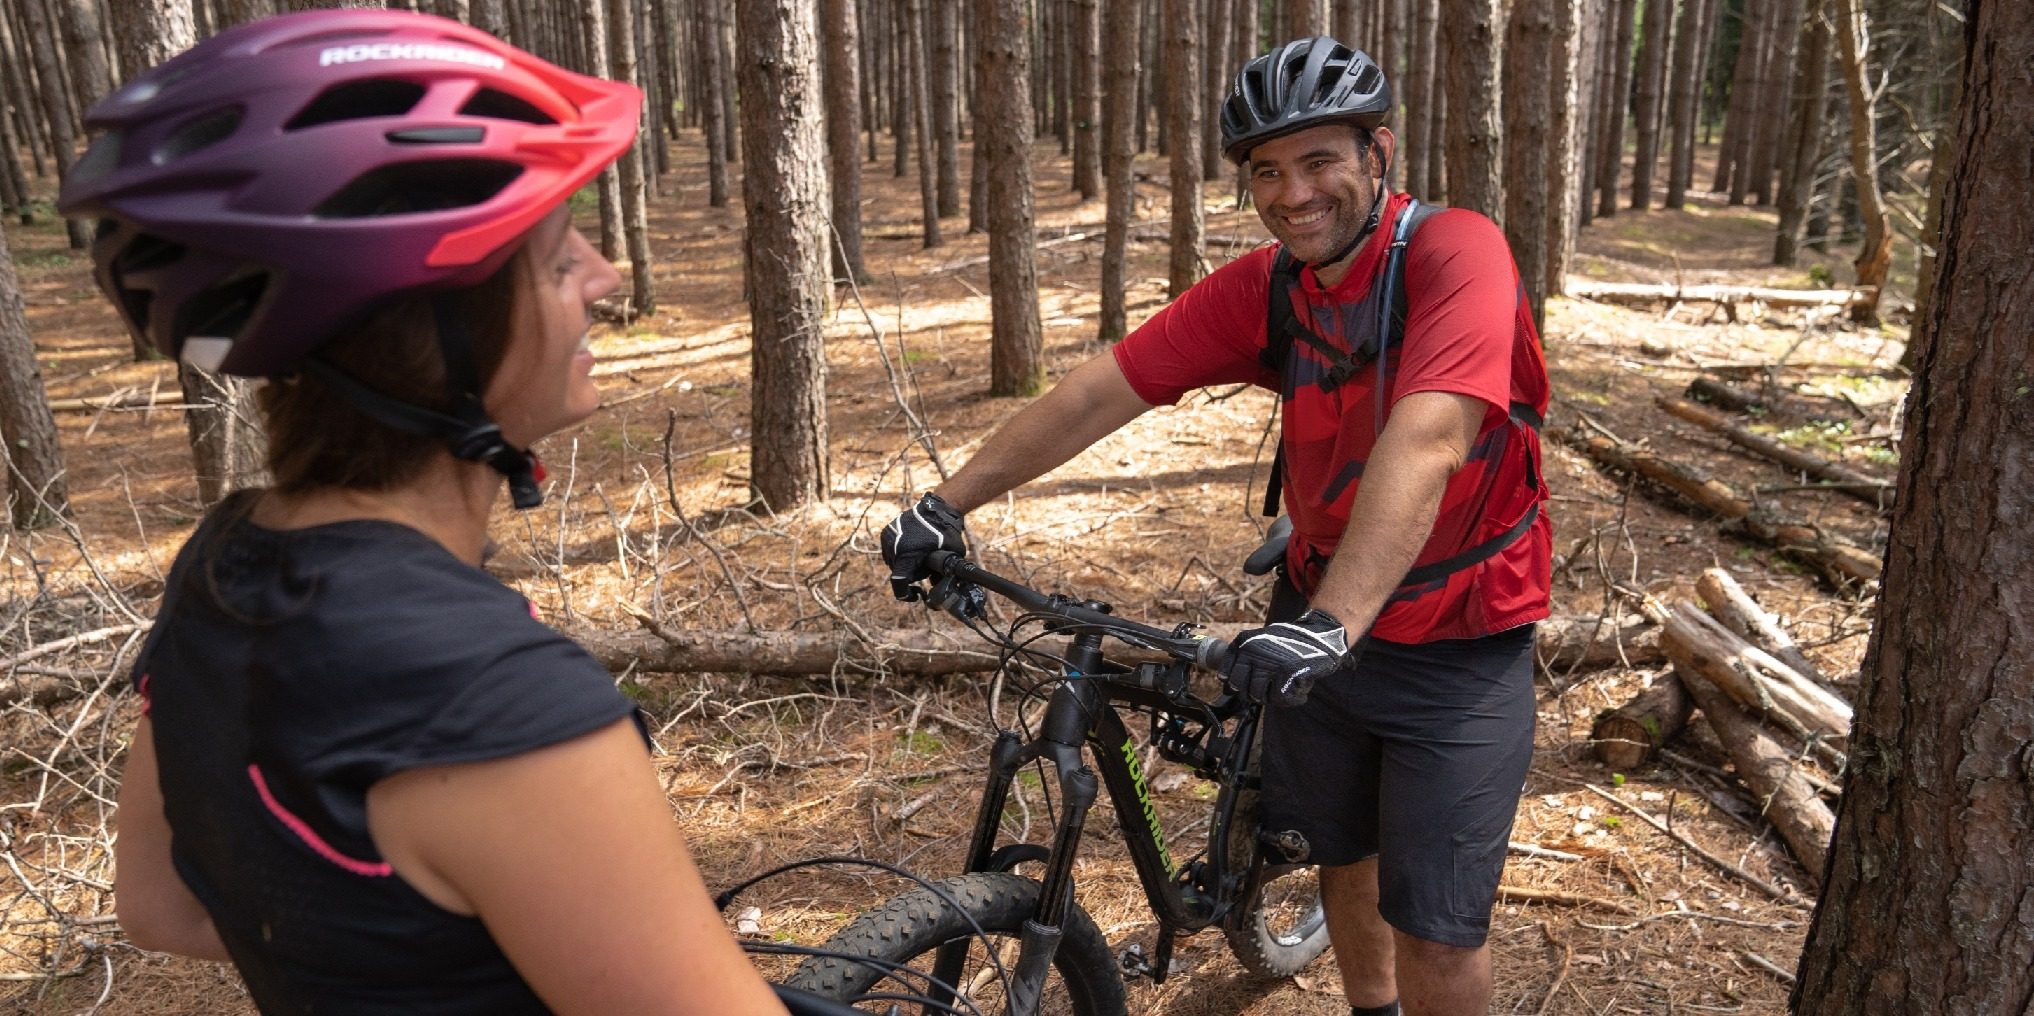 Expert Tips For Fuelling Your Mountain Bike Ride